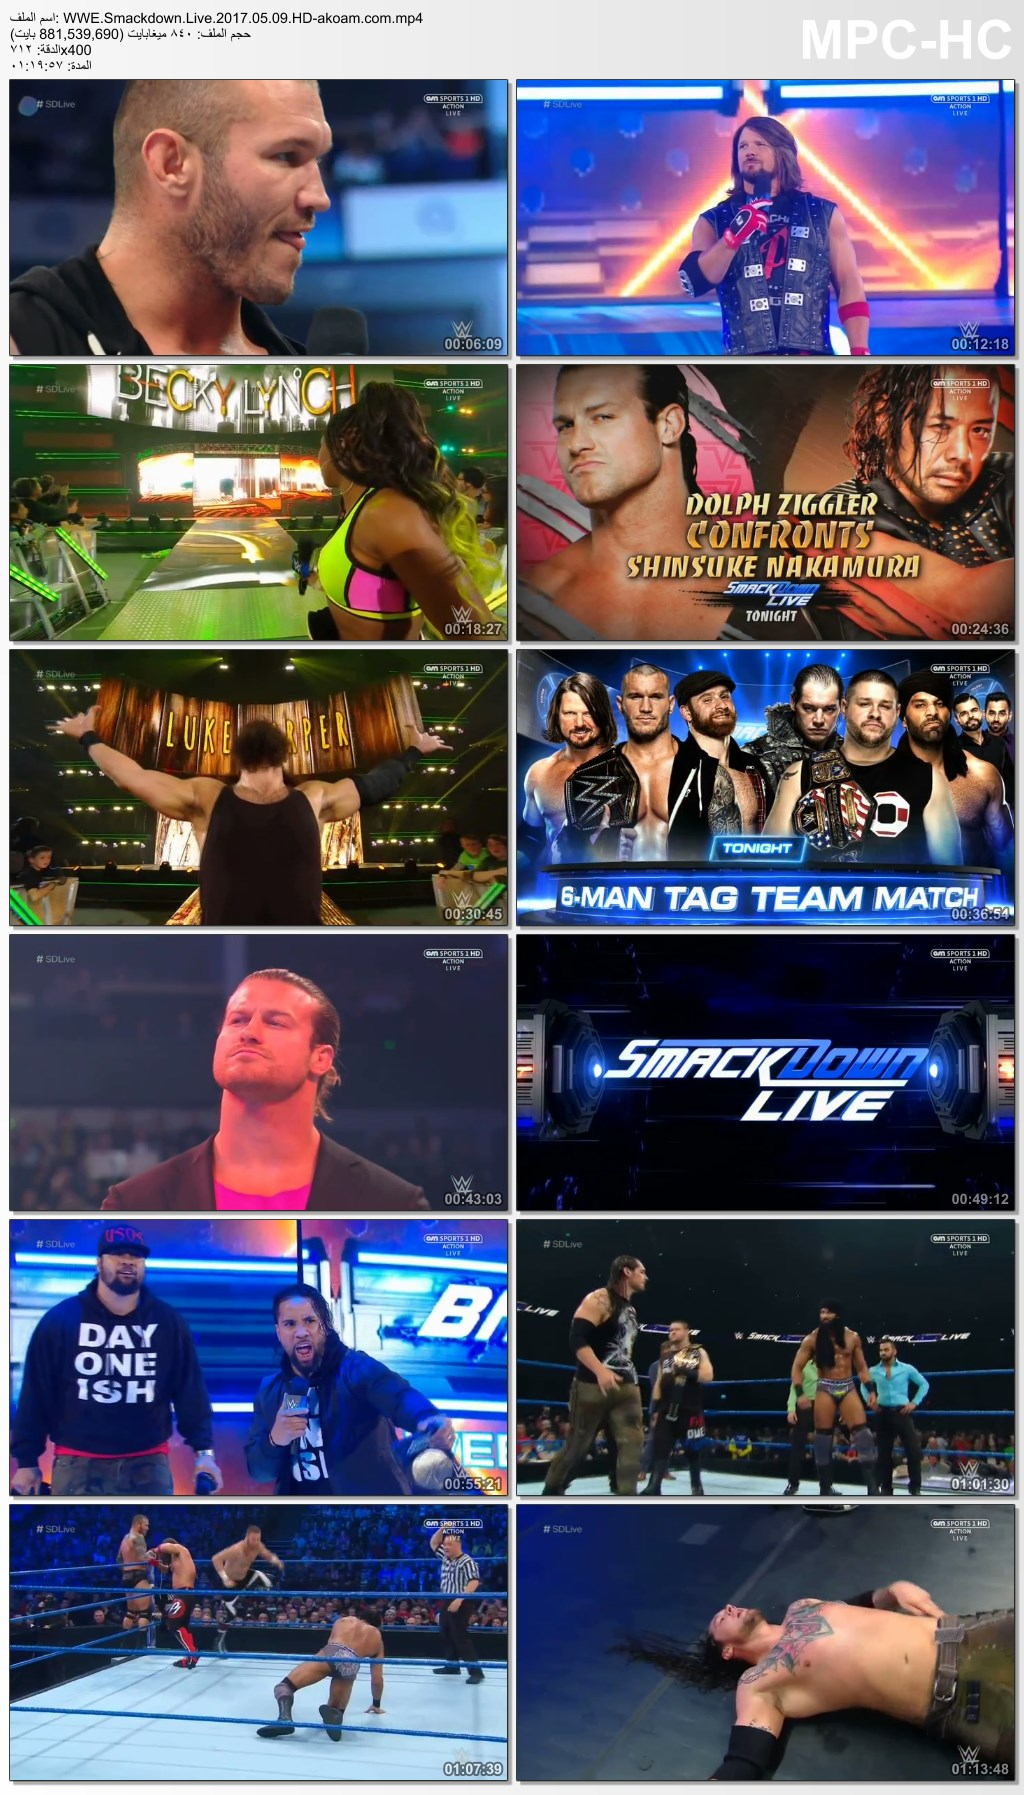 WWE Smackdown Live,Smackdown,WWE